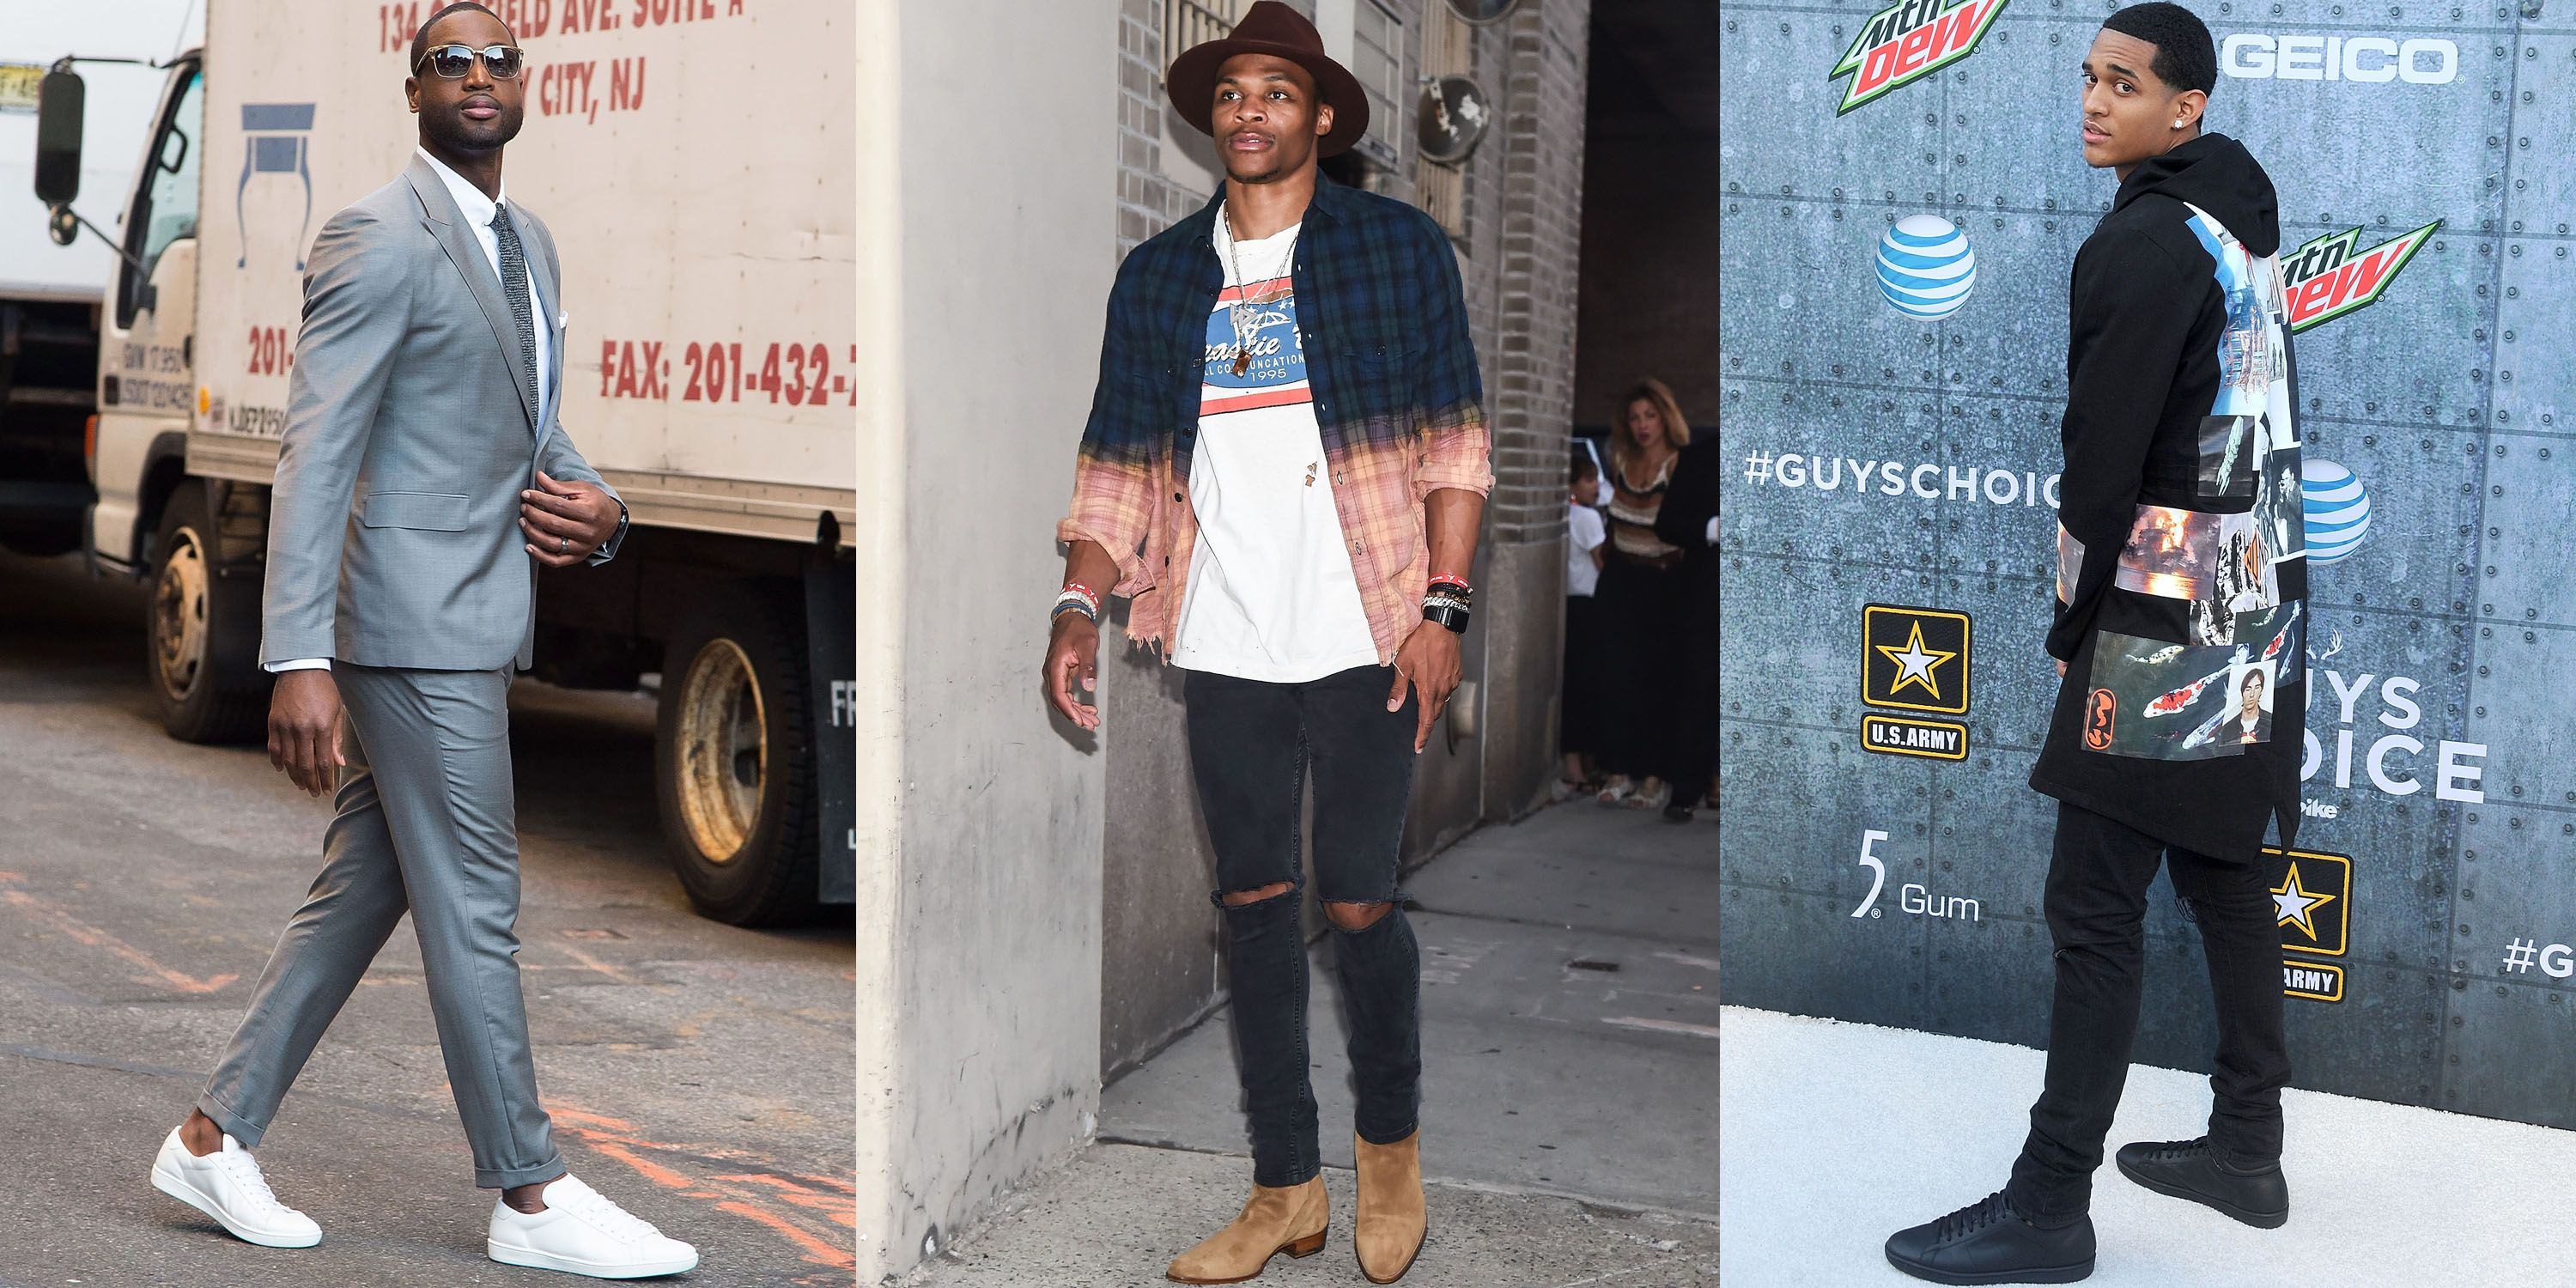 dc7c6e7b214 15 Best Dressed Basketball Players - NBA s Best Dressed Players